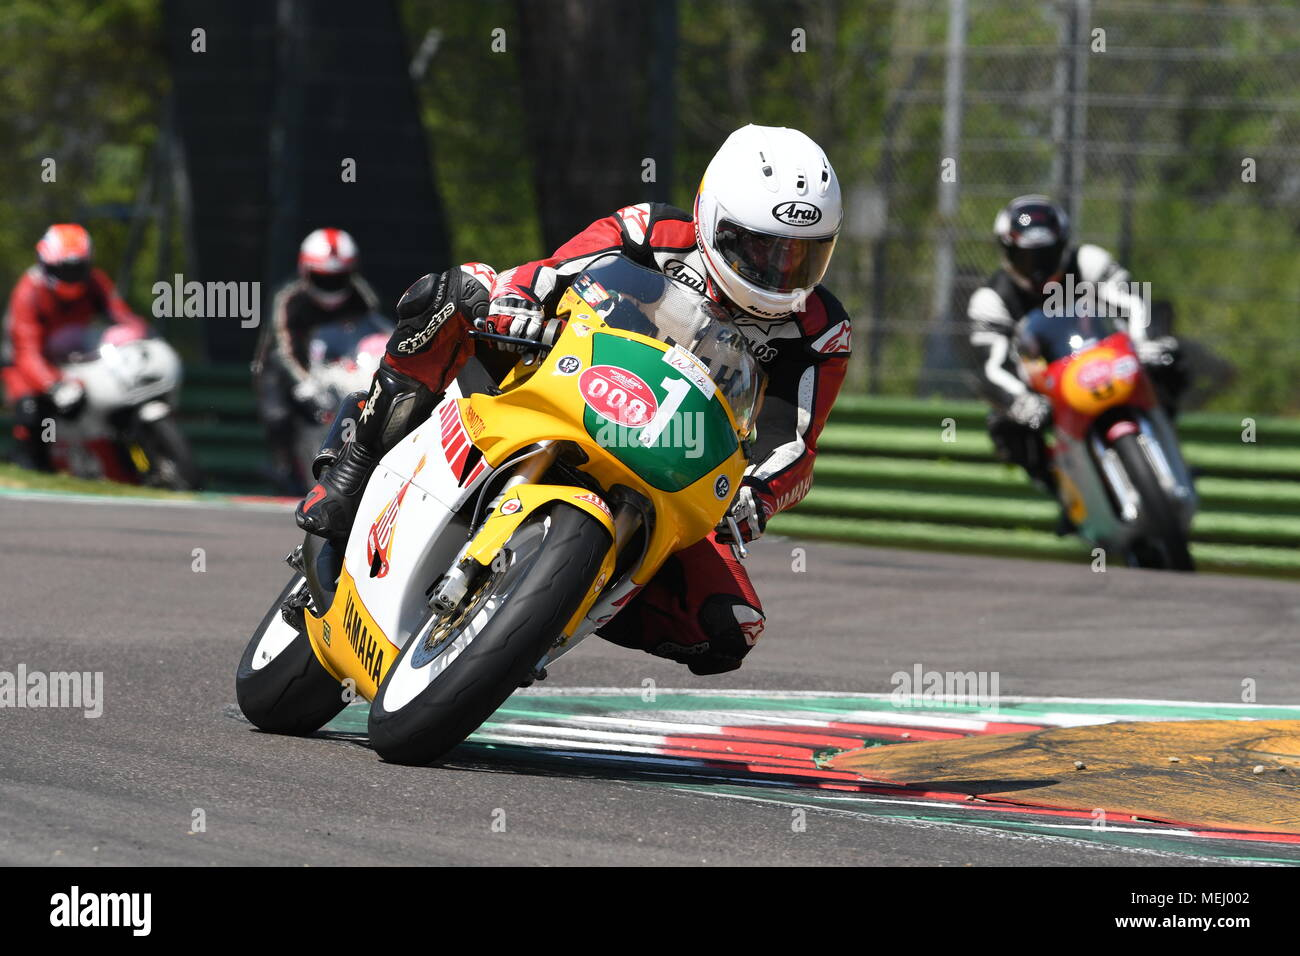 Imola Circuit, Italy. 21 April 2018: Carlos Lavado on Yamaha YZR 250 during Motor Legend Festival 2018 at Imola Circuit in Italy. Credit: dan74/Alamy Live News - Stock Image